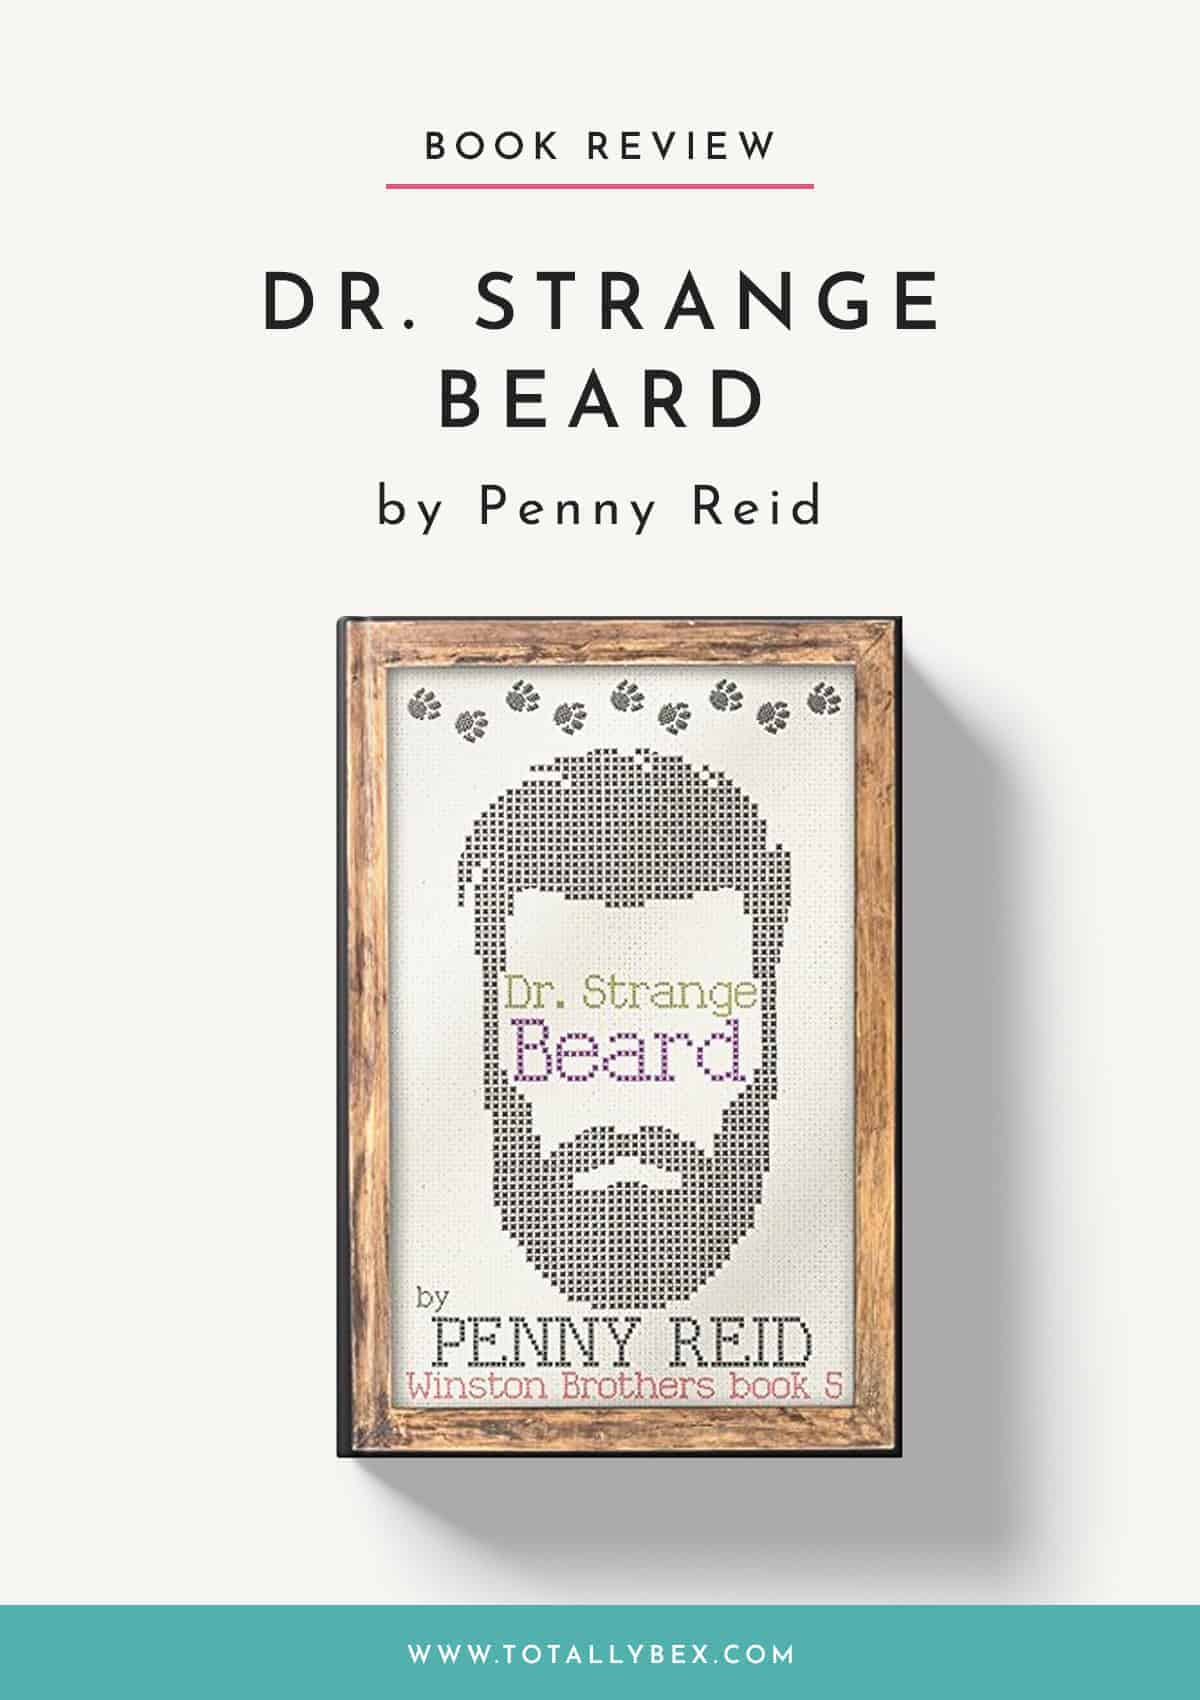 Dr Strange Beard by Penny Reid-Book Review